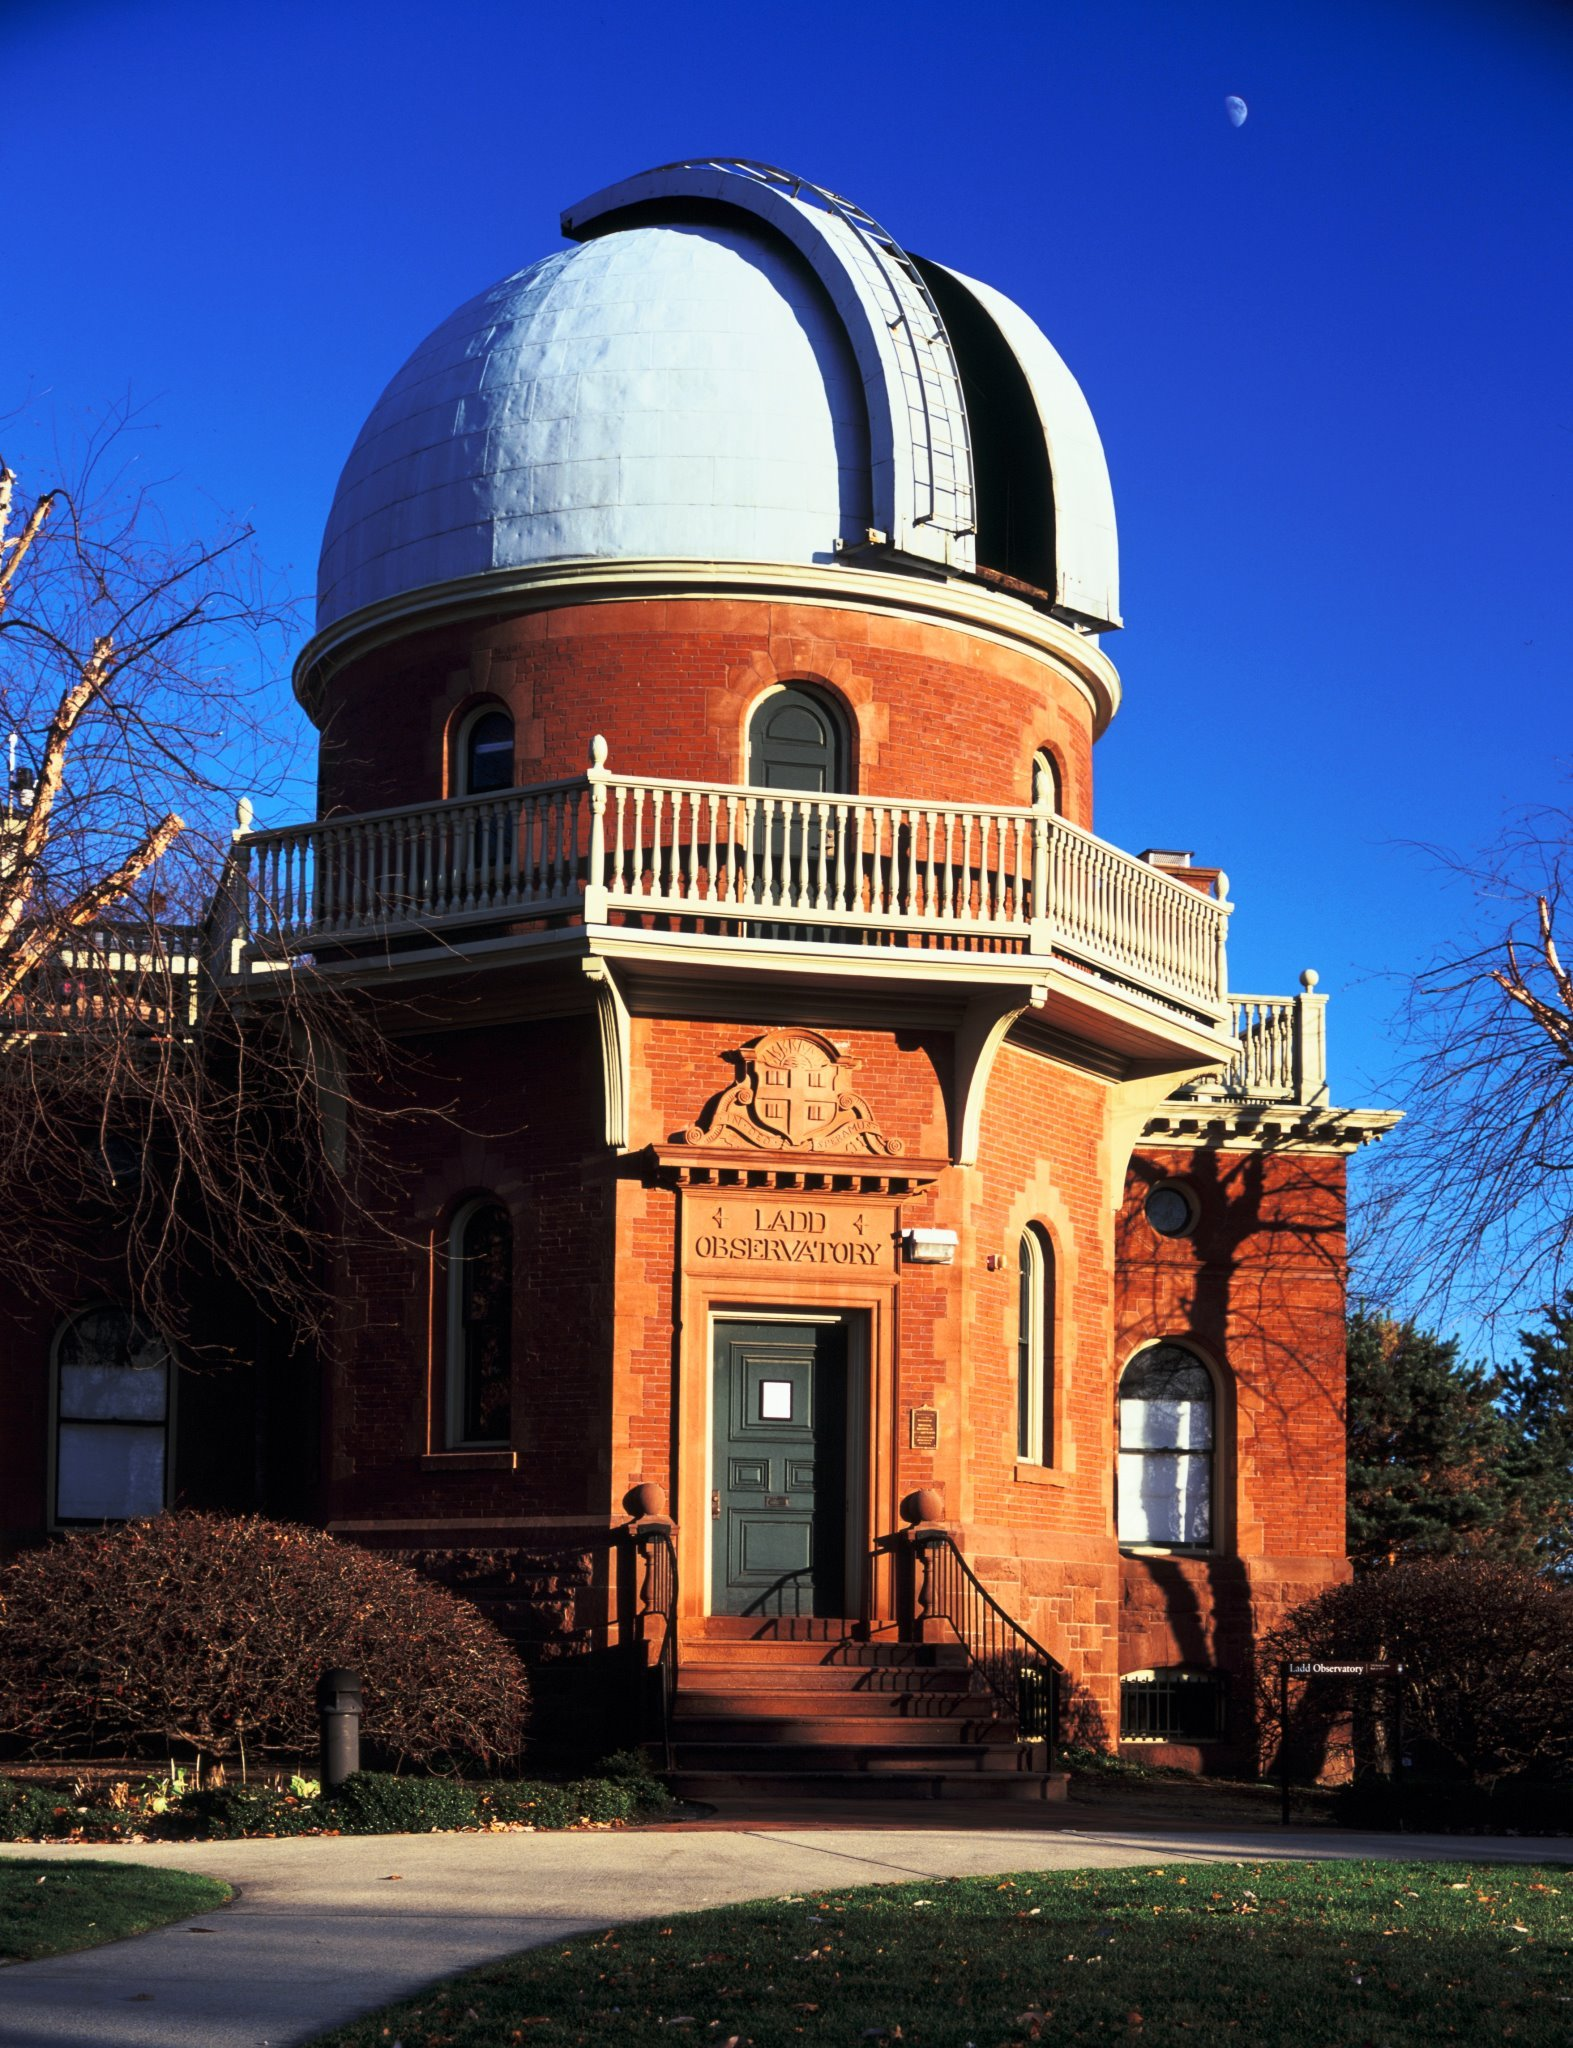 Ladd Observatory: Home